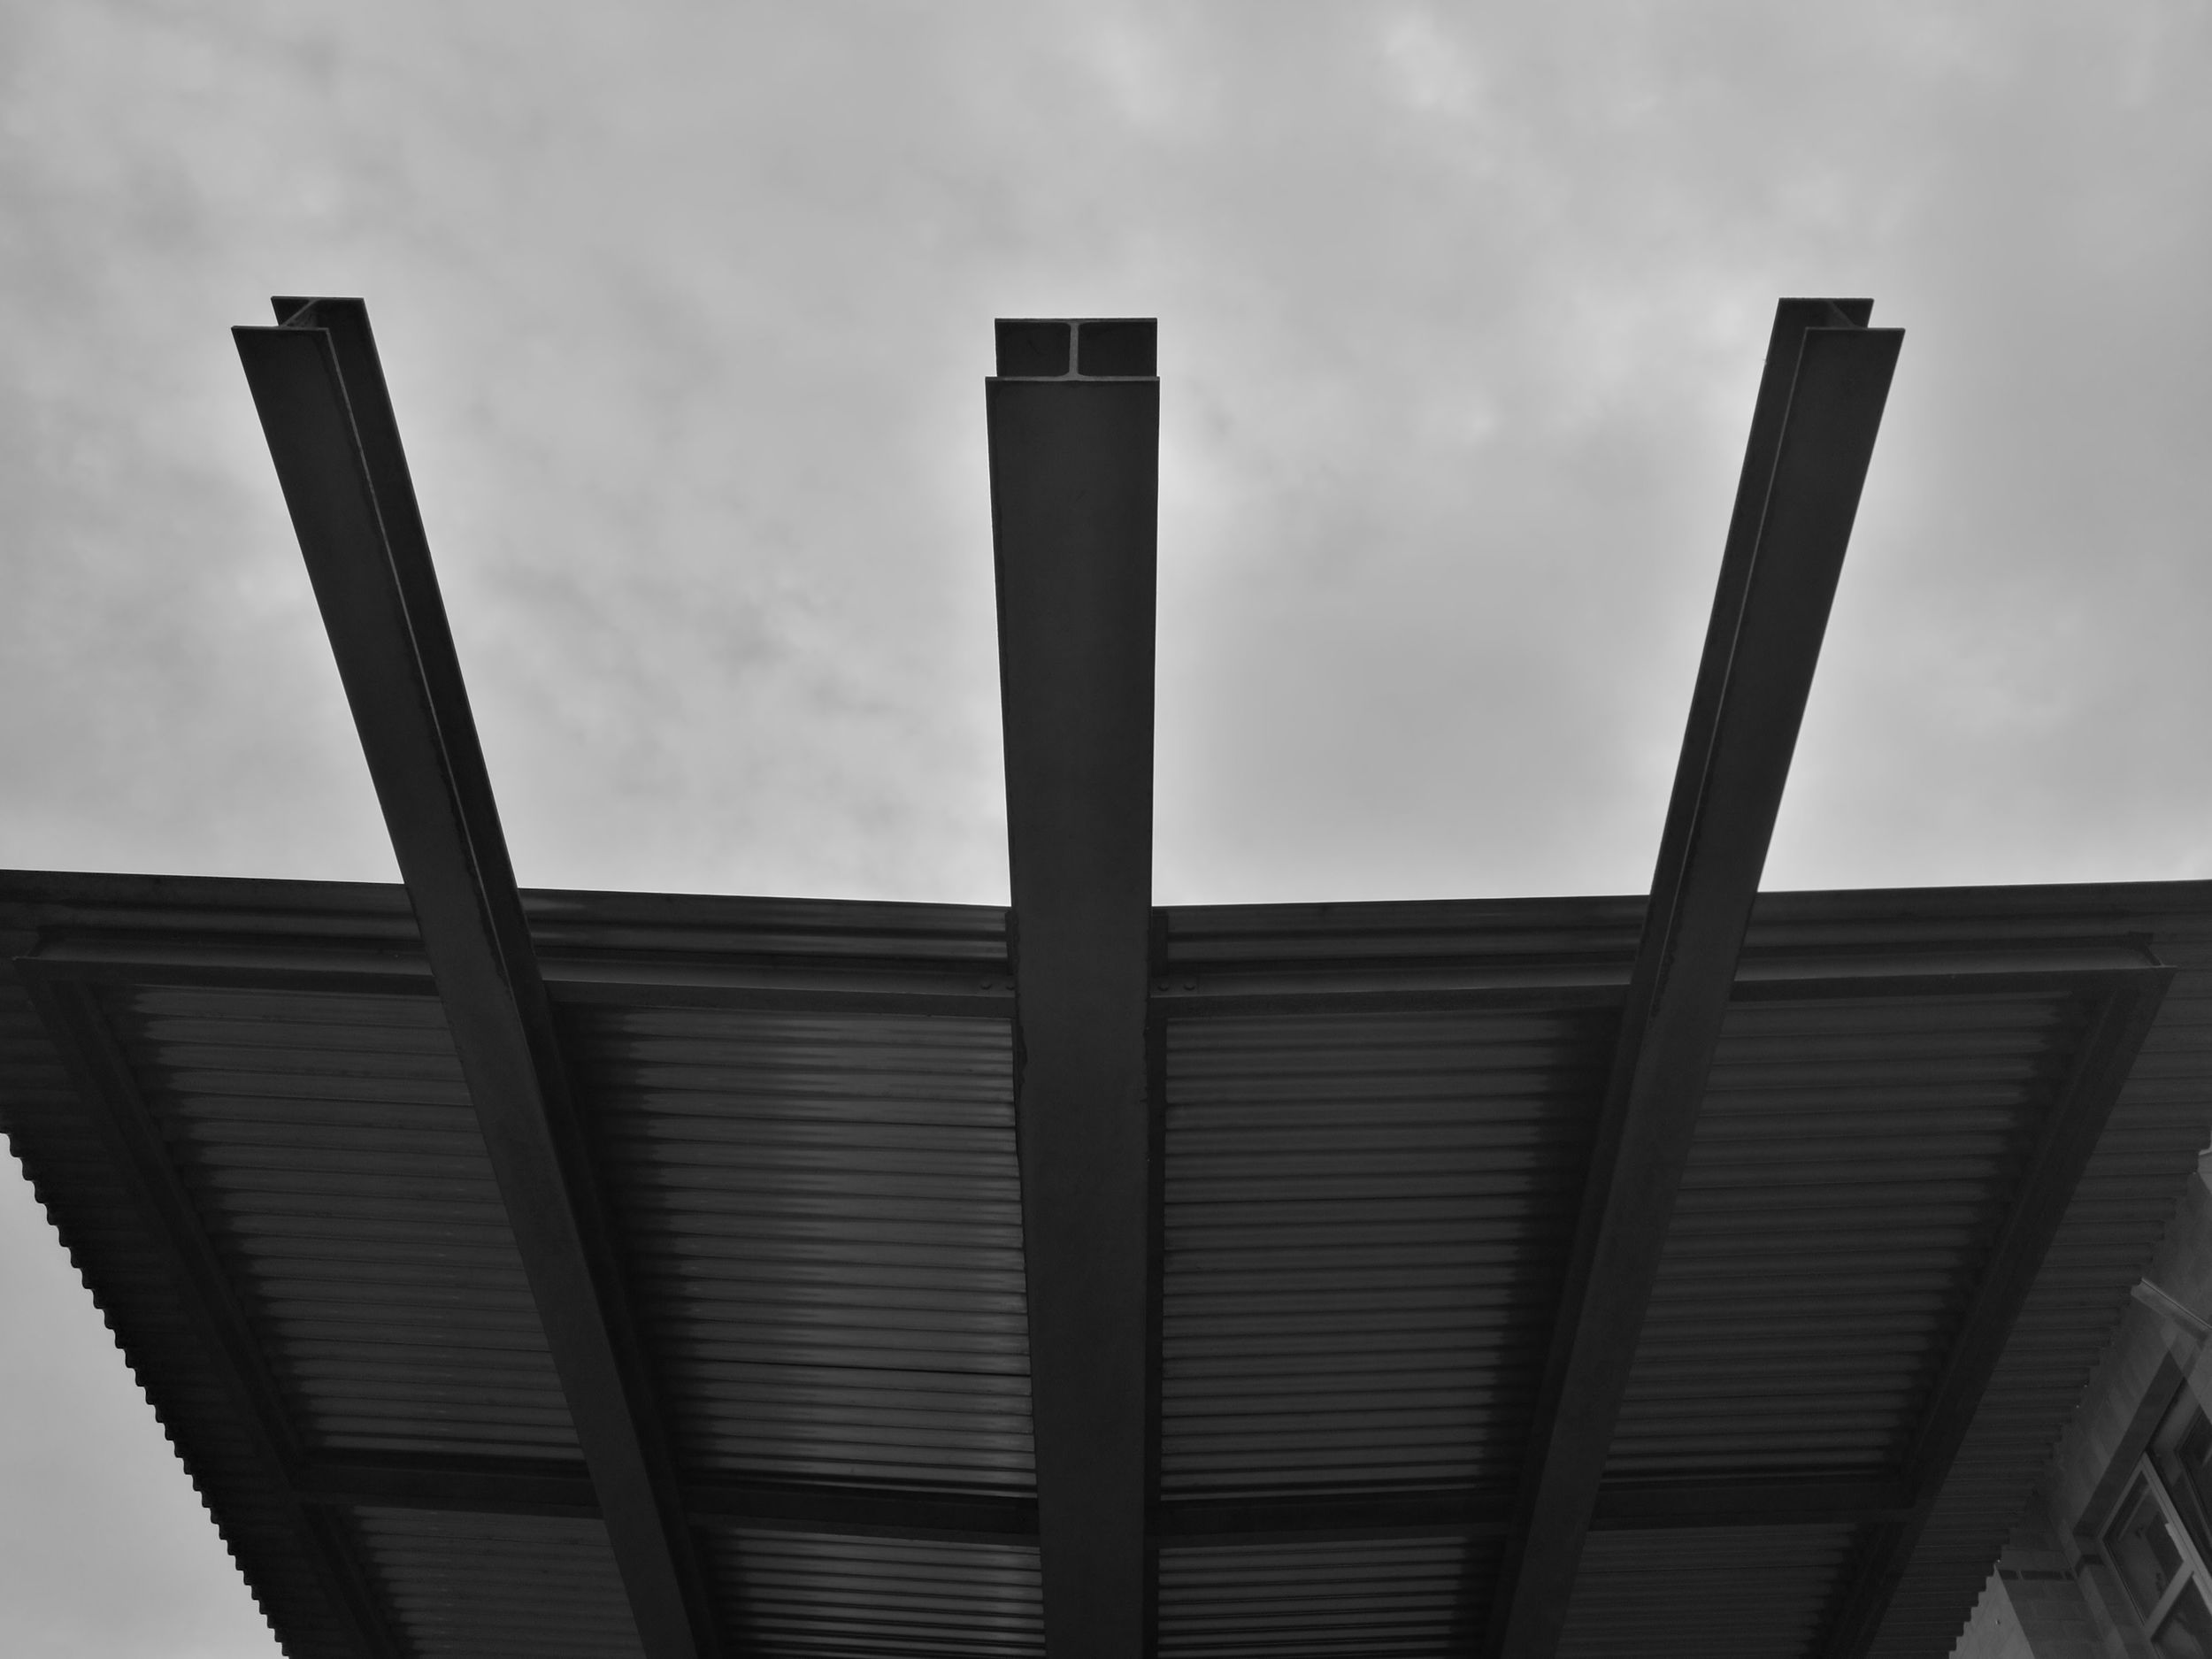 Architecture Built Structure No People Sky Metal Industry Outdoors Low Angle View The Purist (no Edit, No Filter) Blackandwhite Roof